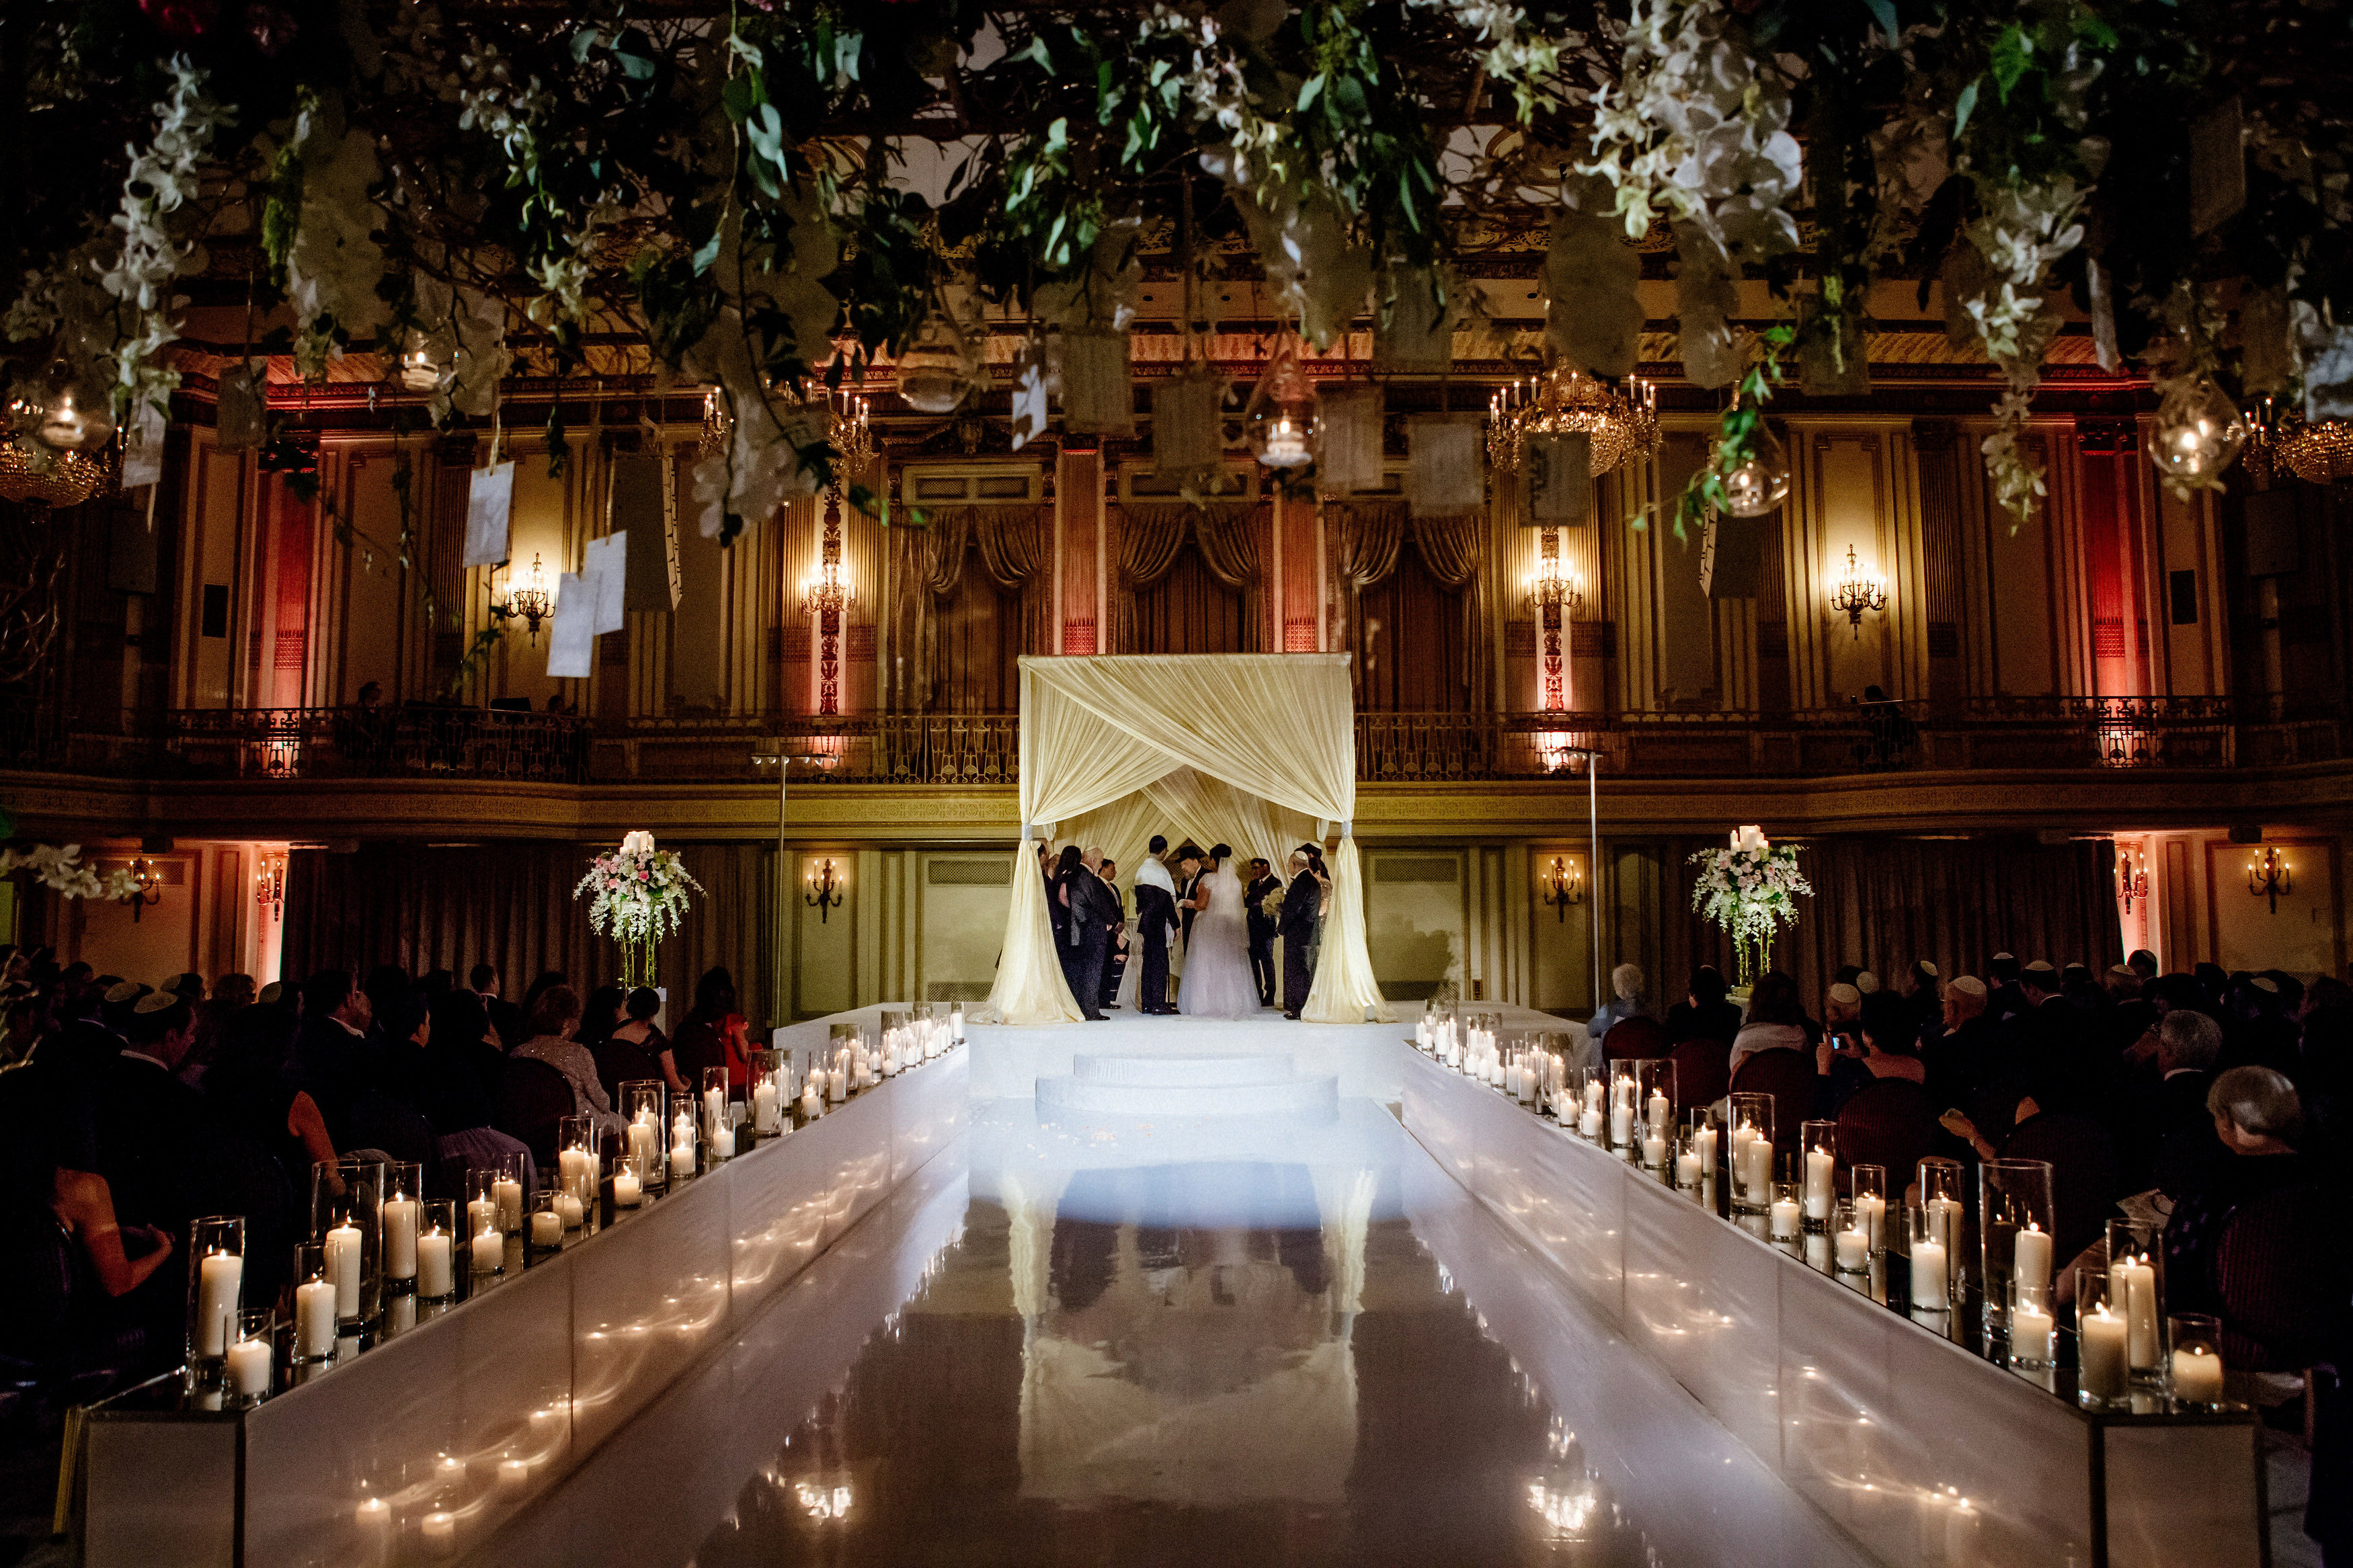 Chuppah decor features a criss cross front and back design with bone mirror fabric tied with Swarovski cuffs. The wishing arch is dressed with gold manzanita branches with white/ivory fresh floral and greenery. Small water drop accents are also included.